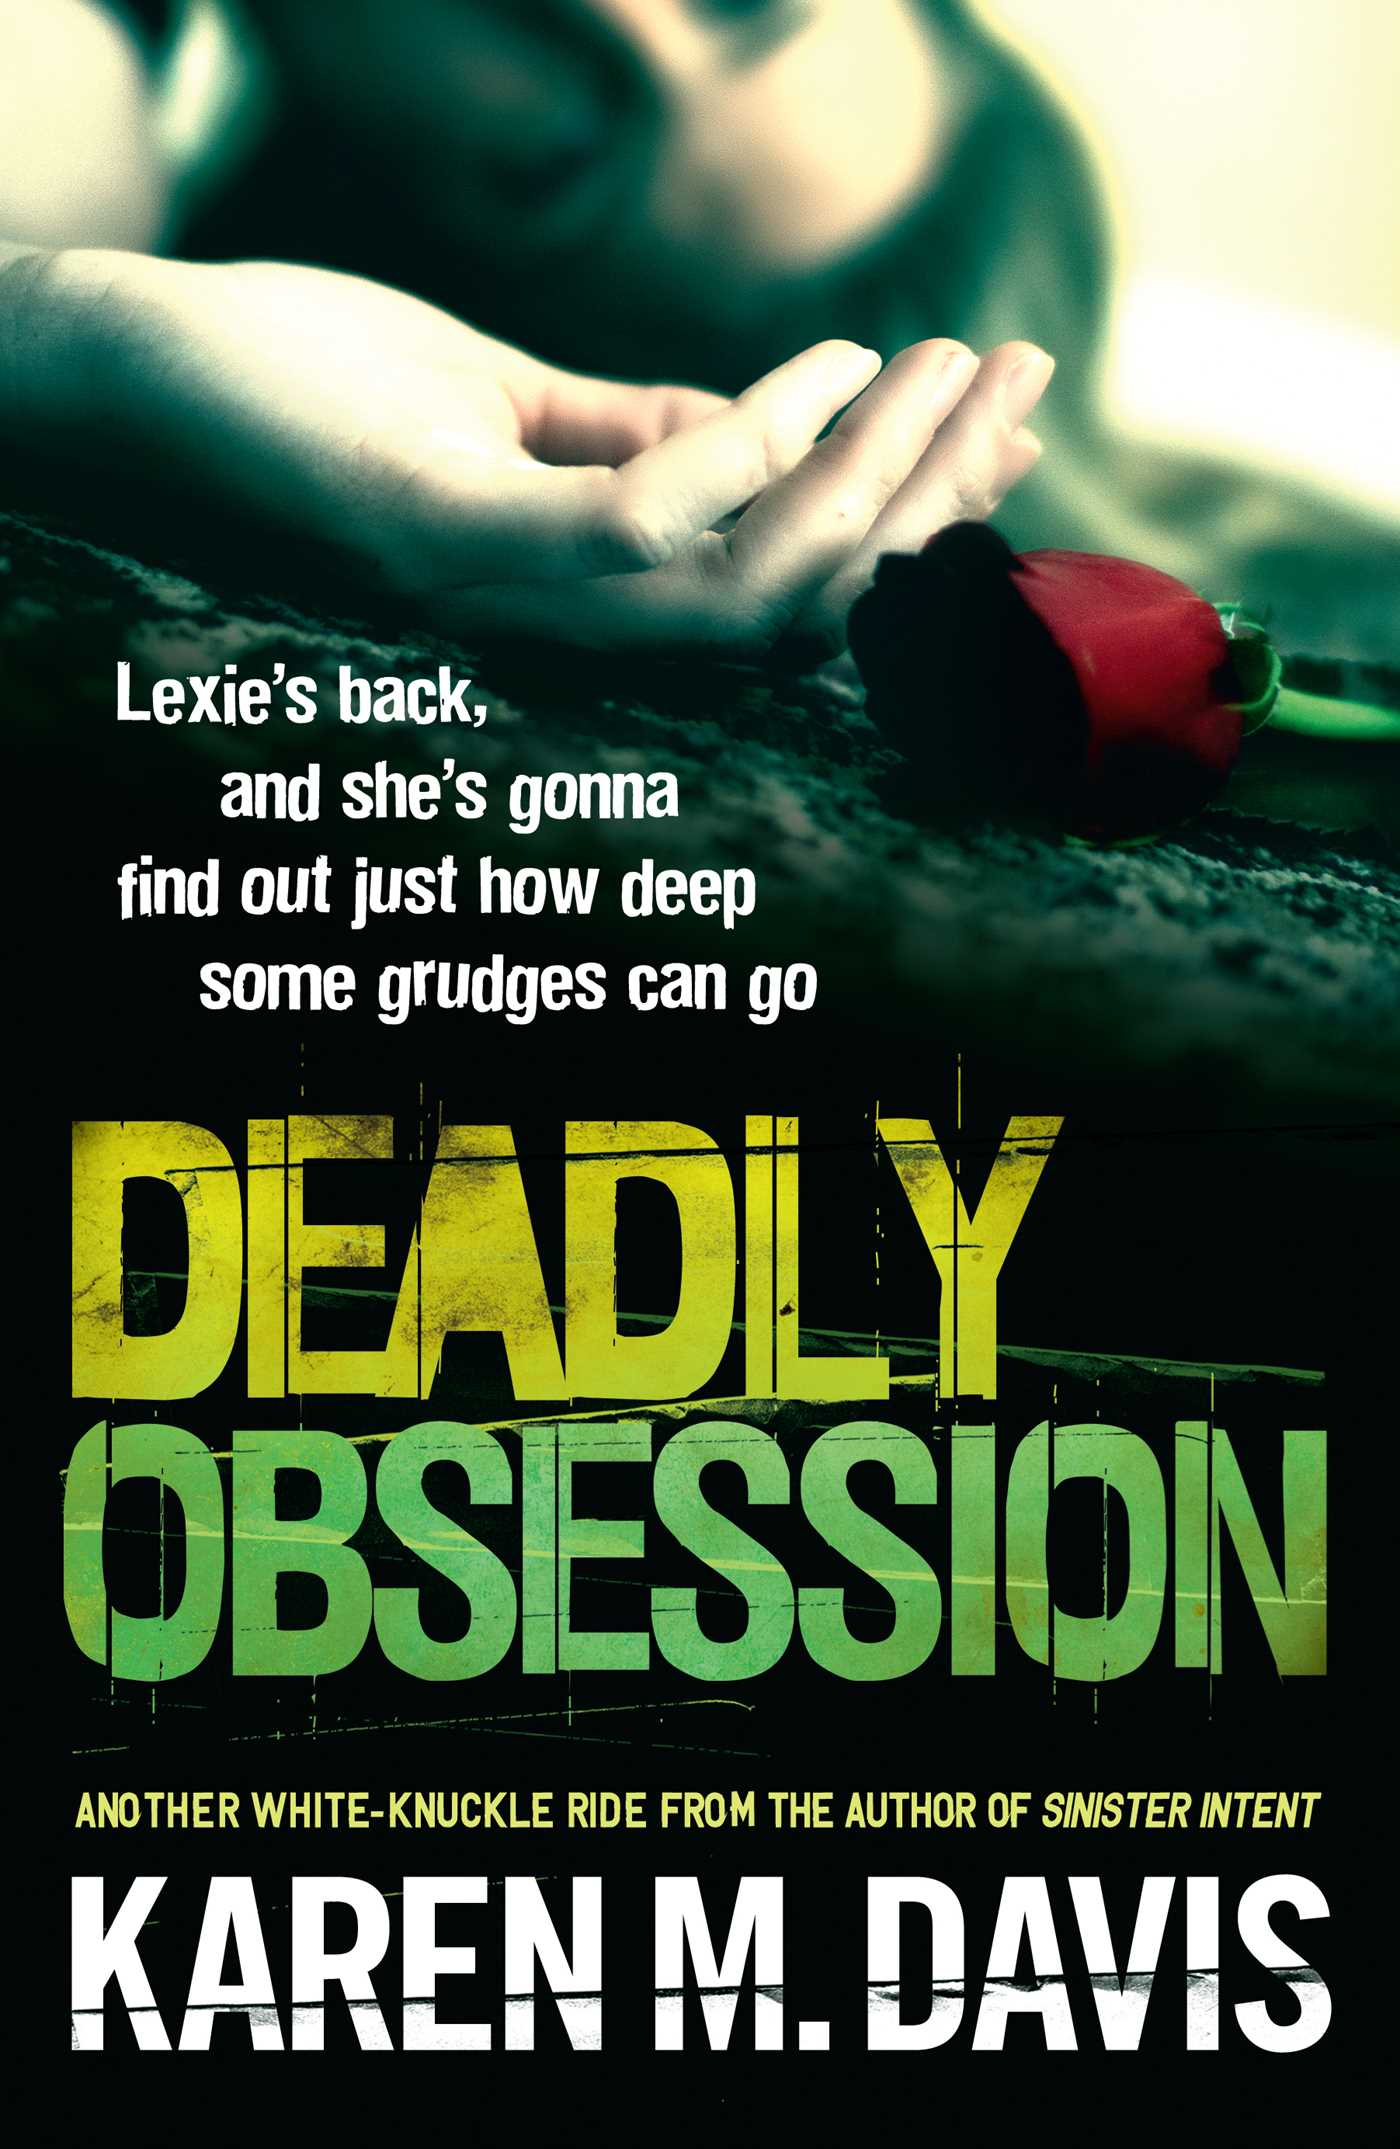 Image result for Deadly Obsession karen m davis